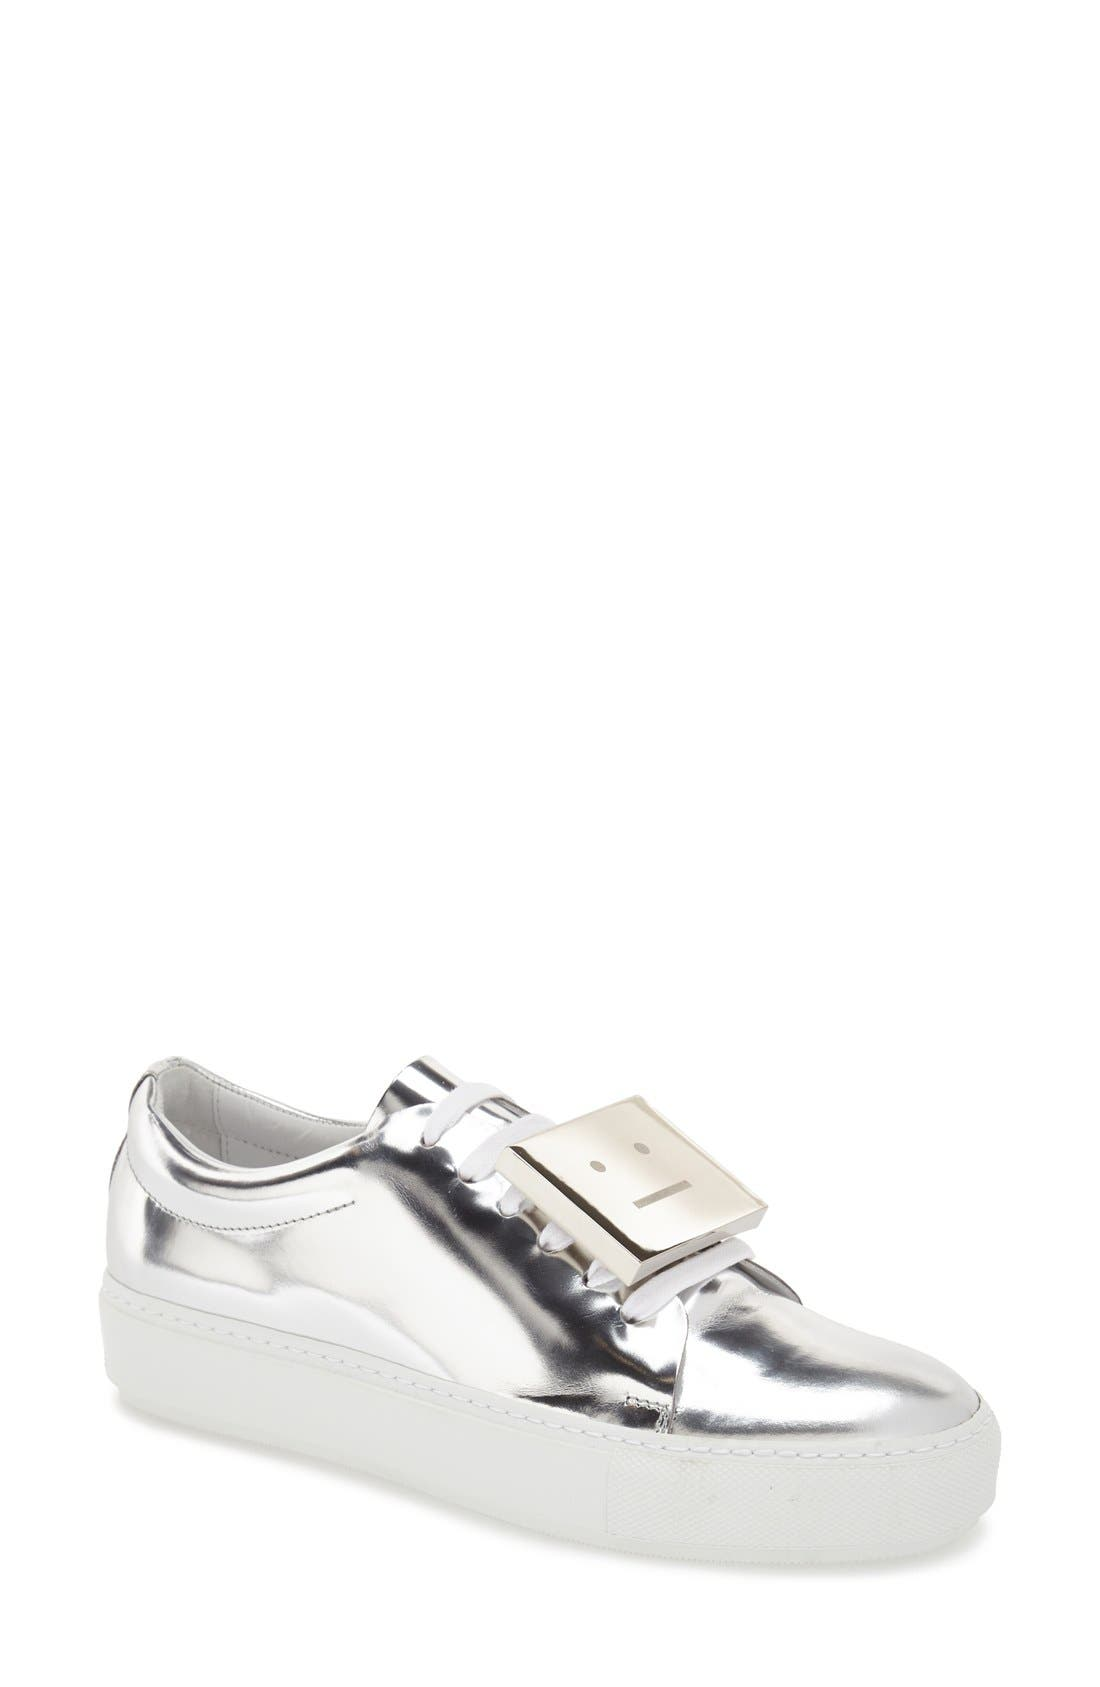 Alternate Image 1 Selected - ACNE Studios 'Adriana' Silver Metallic Sneaker (Women)